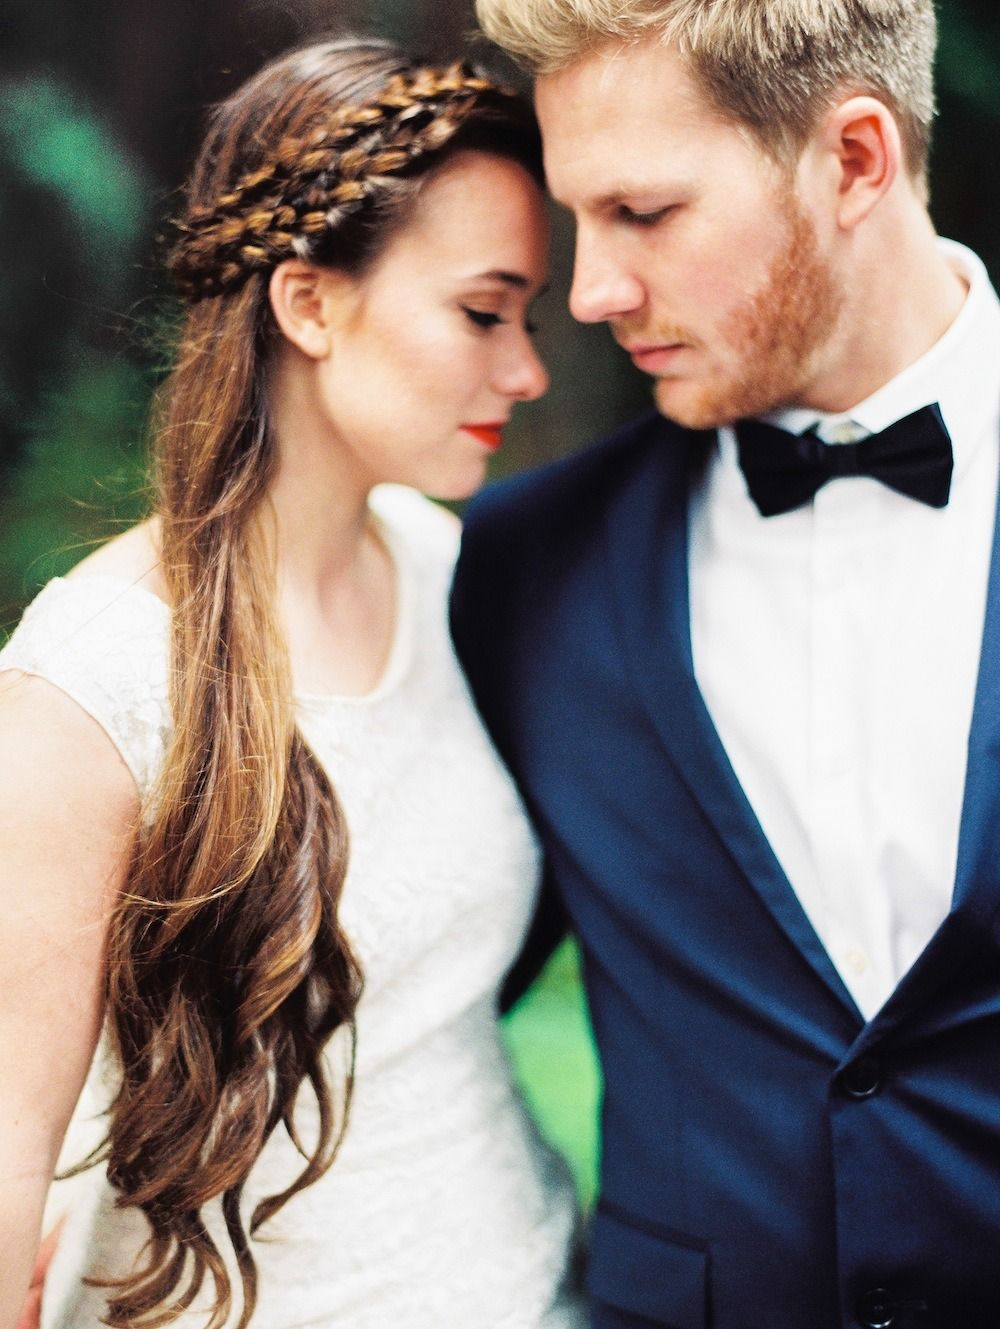 #hairstyles  Photography: Perry Vaile - www.perryvaile.com  Read More: http://www.stylemepretty.com/2014/06/04/elopement-among-the-redwoods/